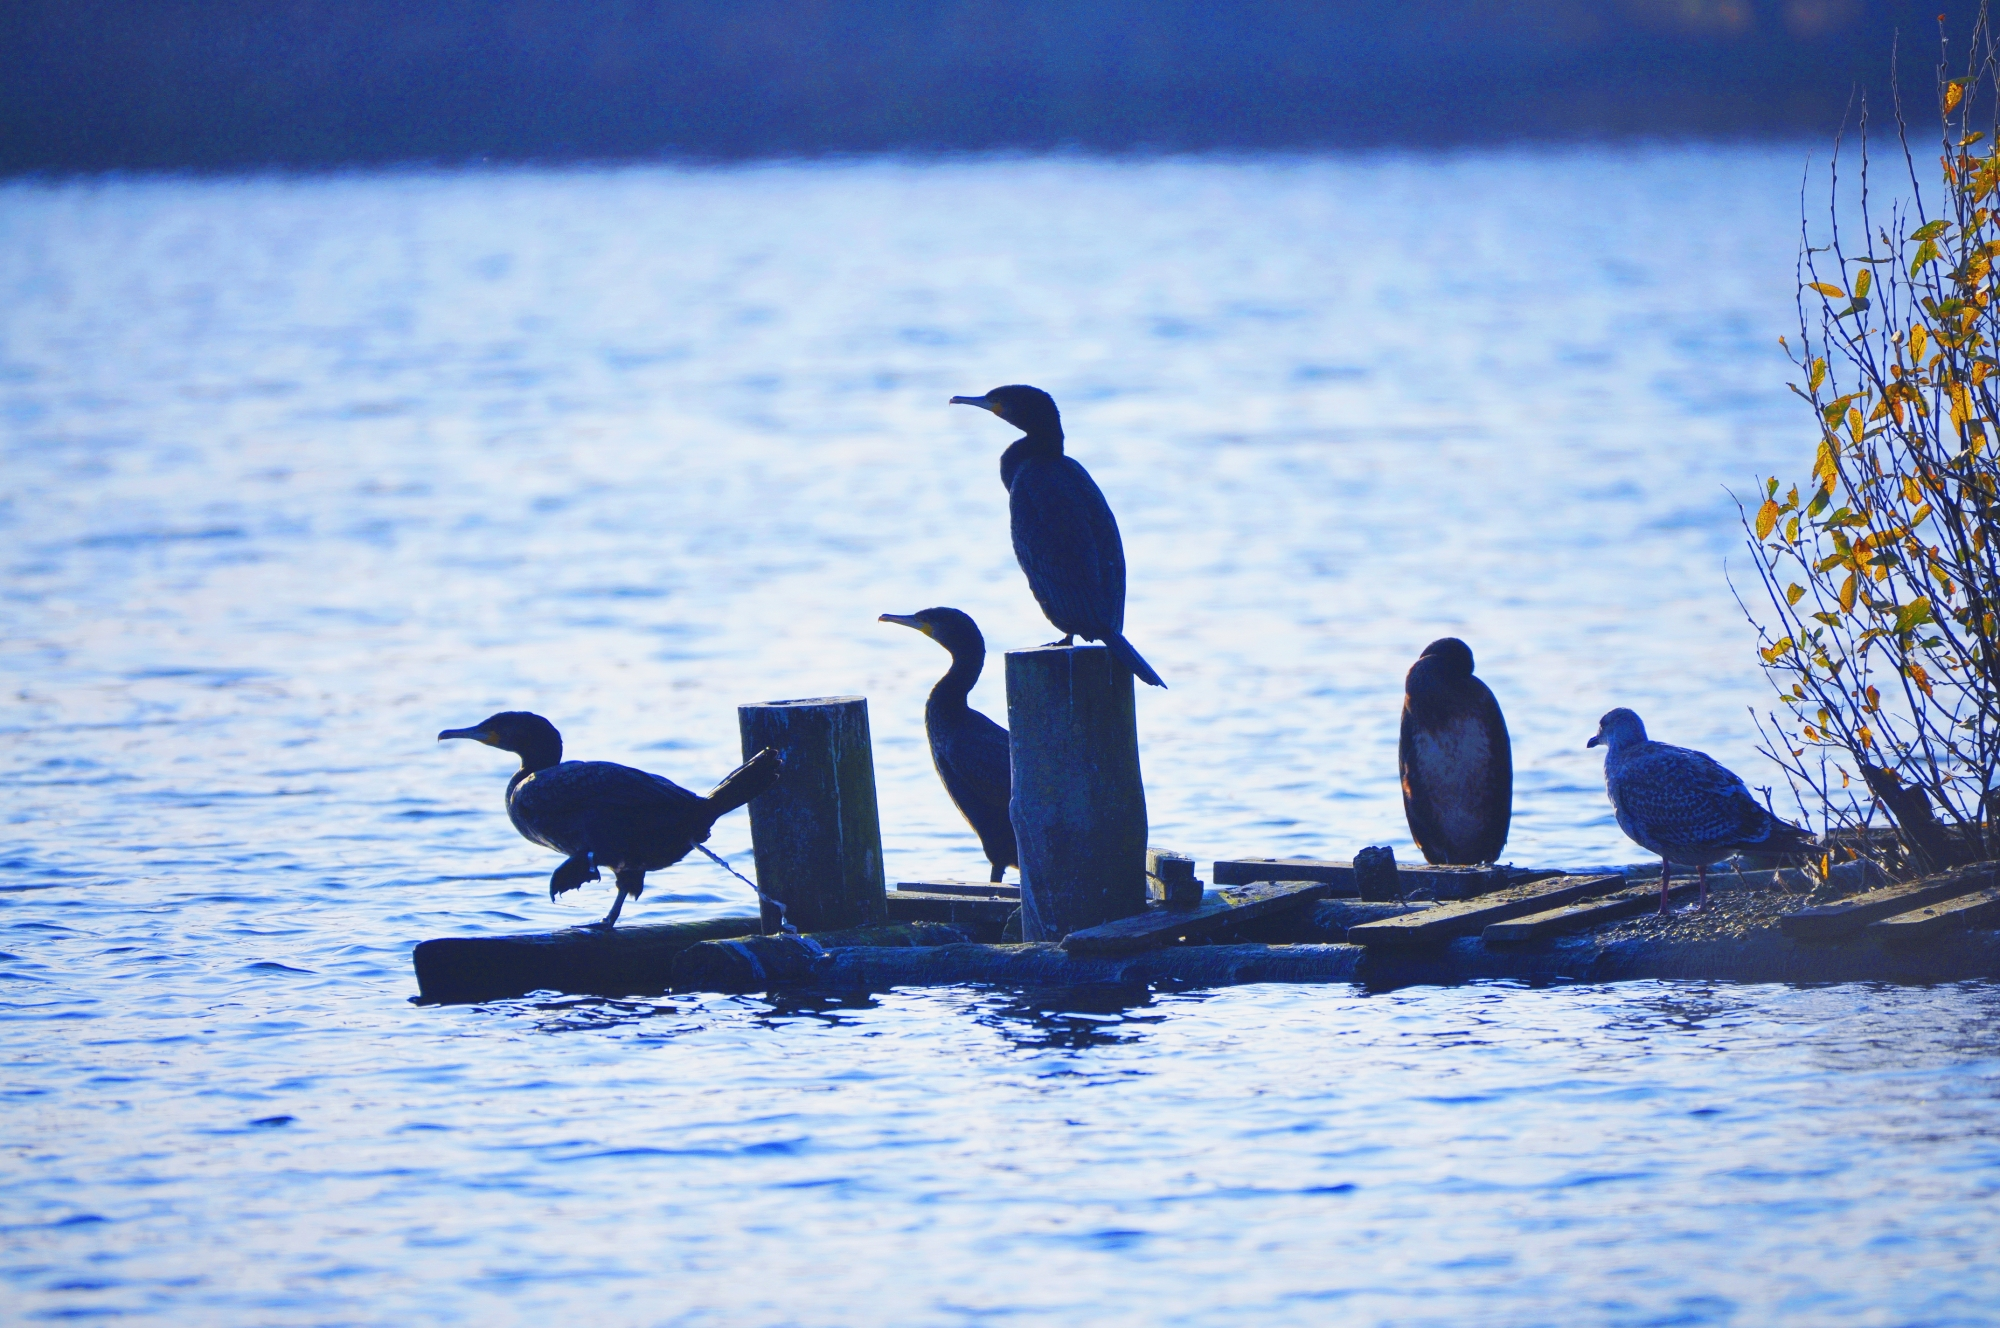 A small collection of cormorant gathered on an island